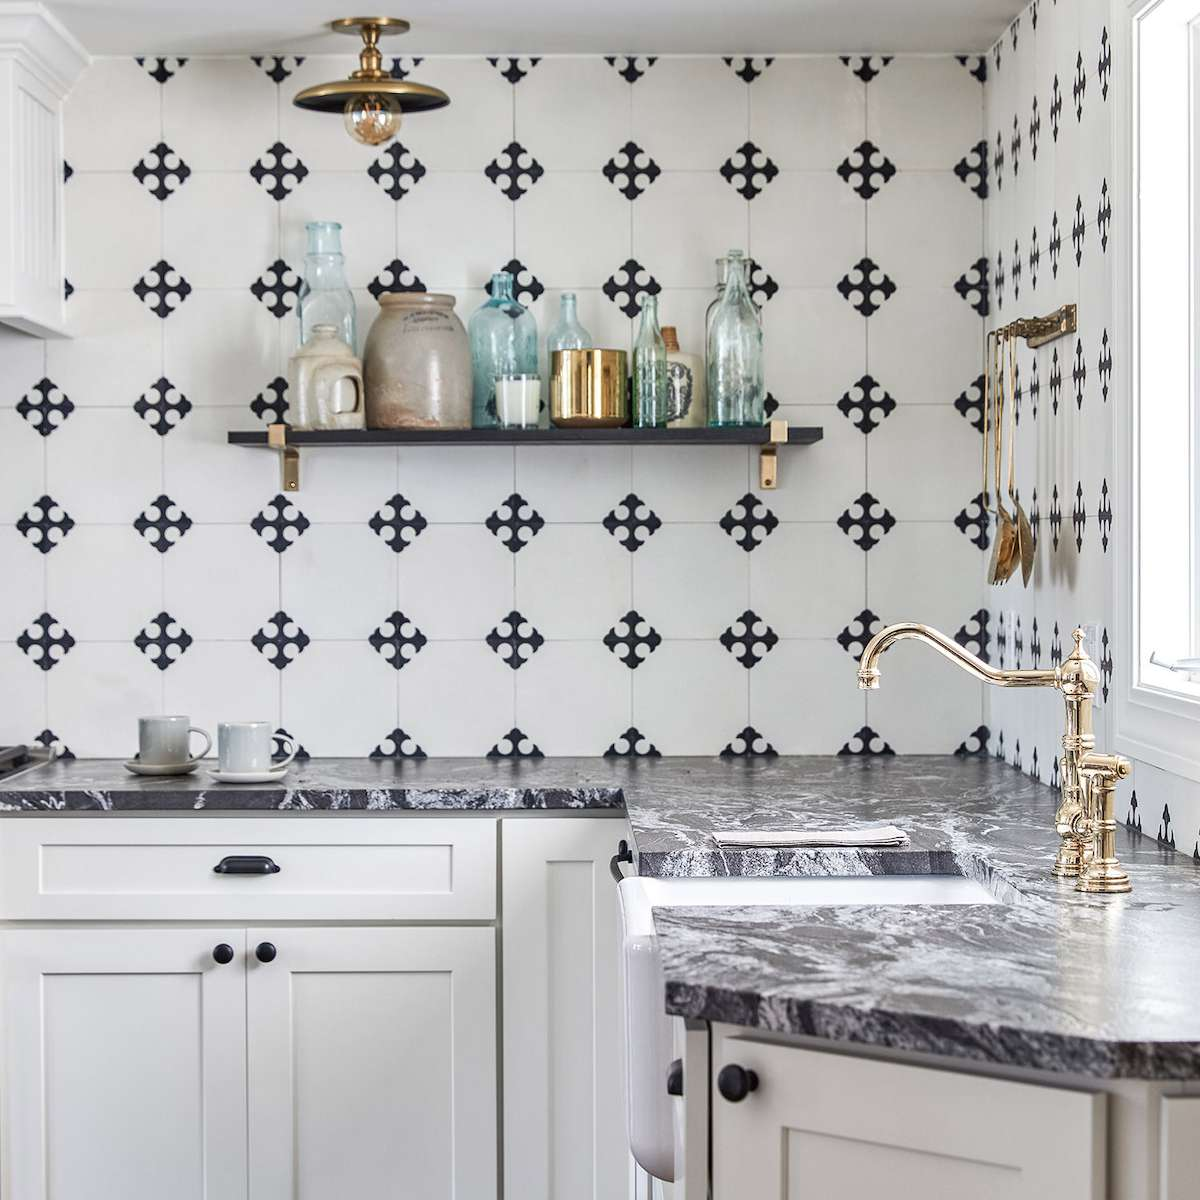 A kitchen with a gold faucet, gold light fixtures, and gold shelf brackets—but matte black doorknobs and drawer pulls